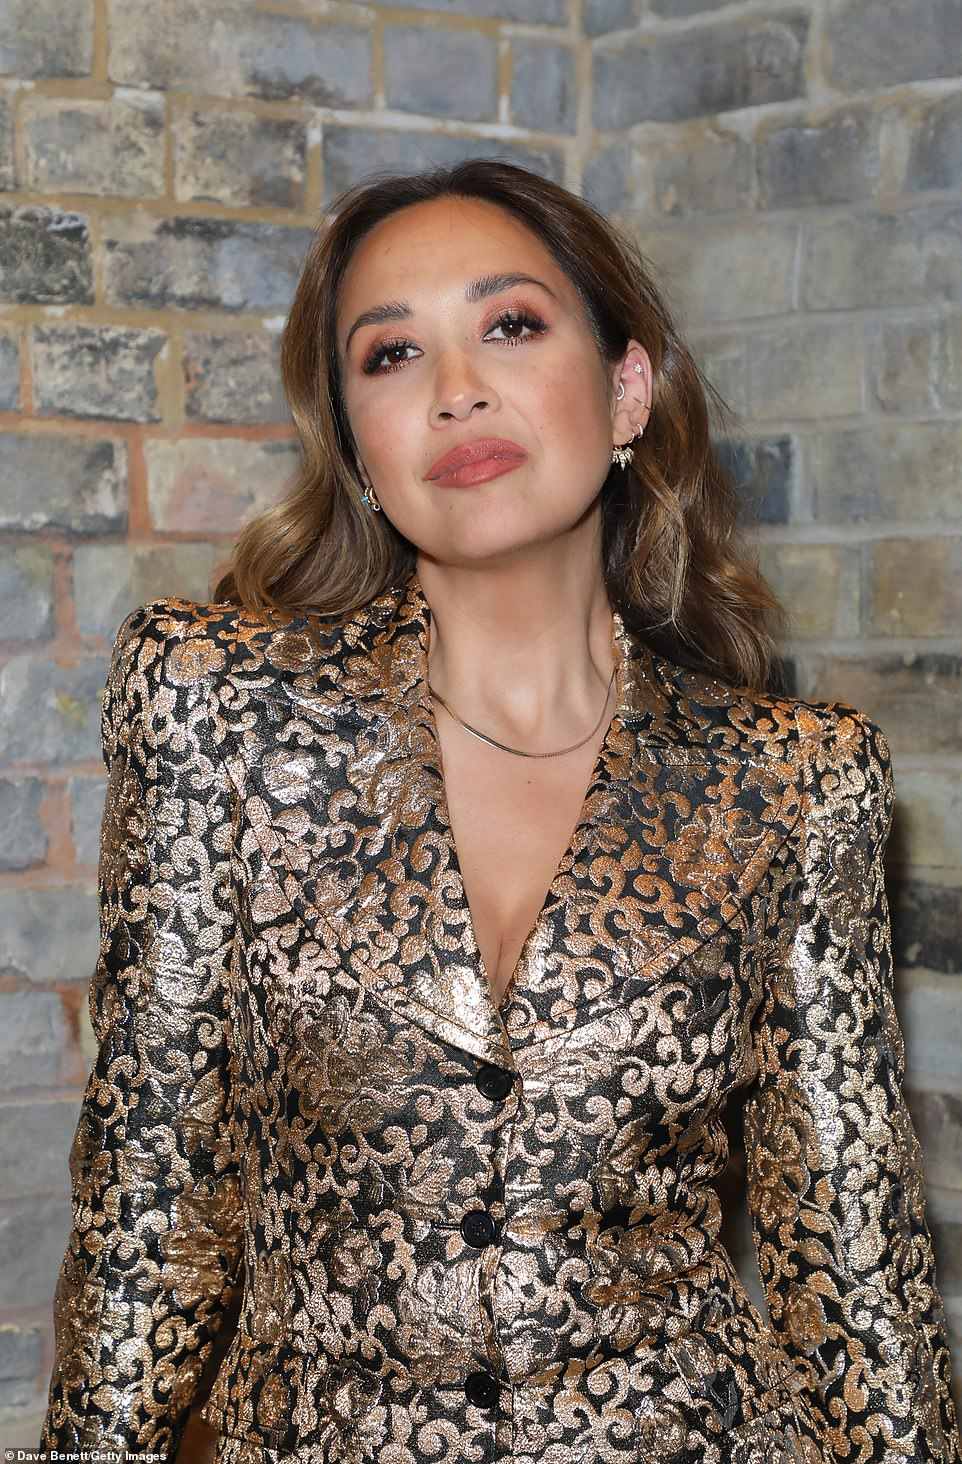 Radiant:Myleene wore a black and gold suit as she posed for the cameras at the event, accessorising with a black bag and slick of pink lip for her makeup